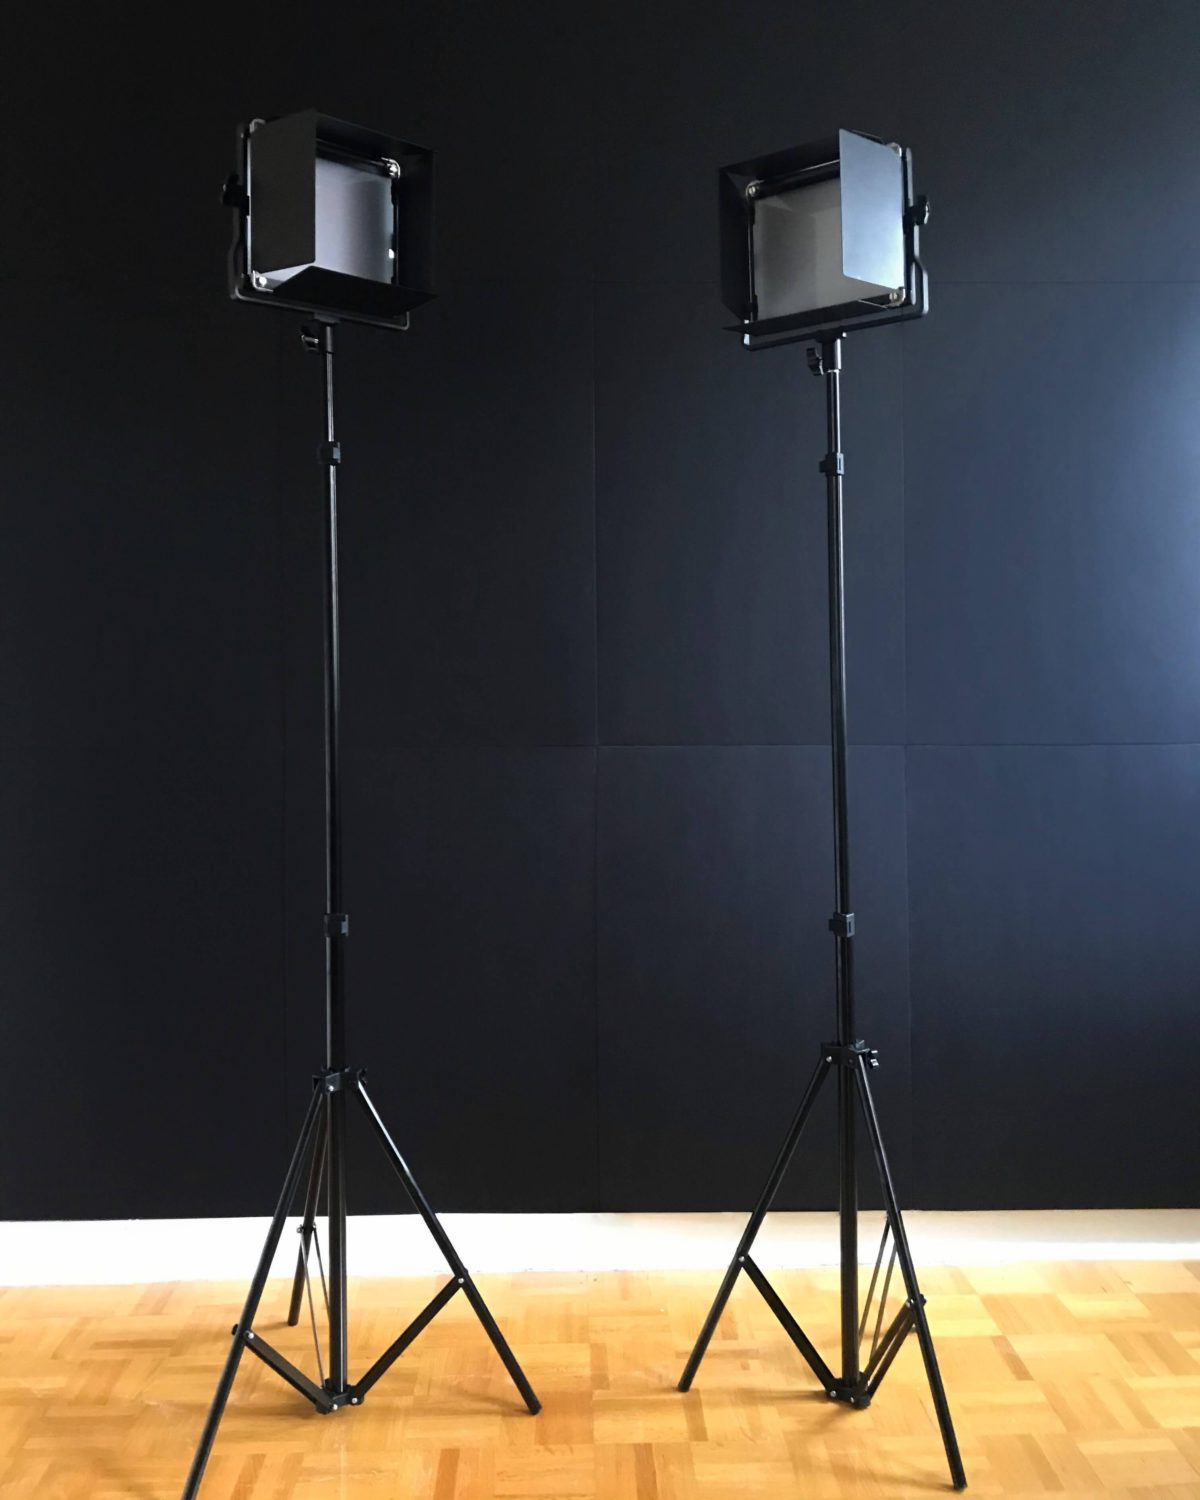 Studio lights with black backdrop